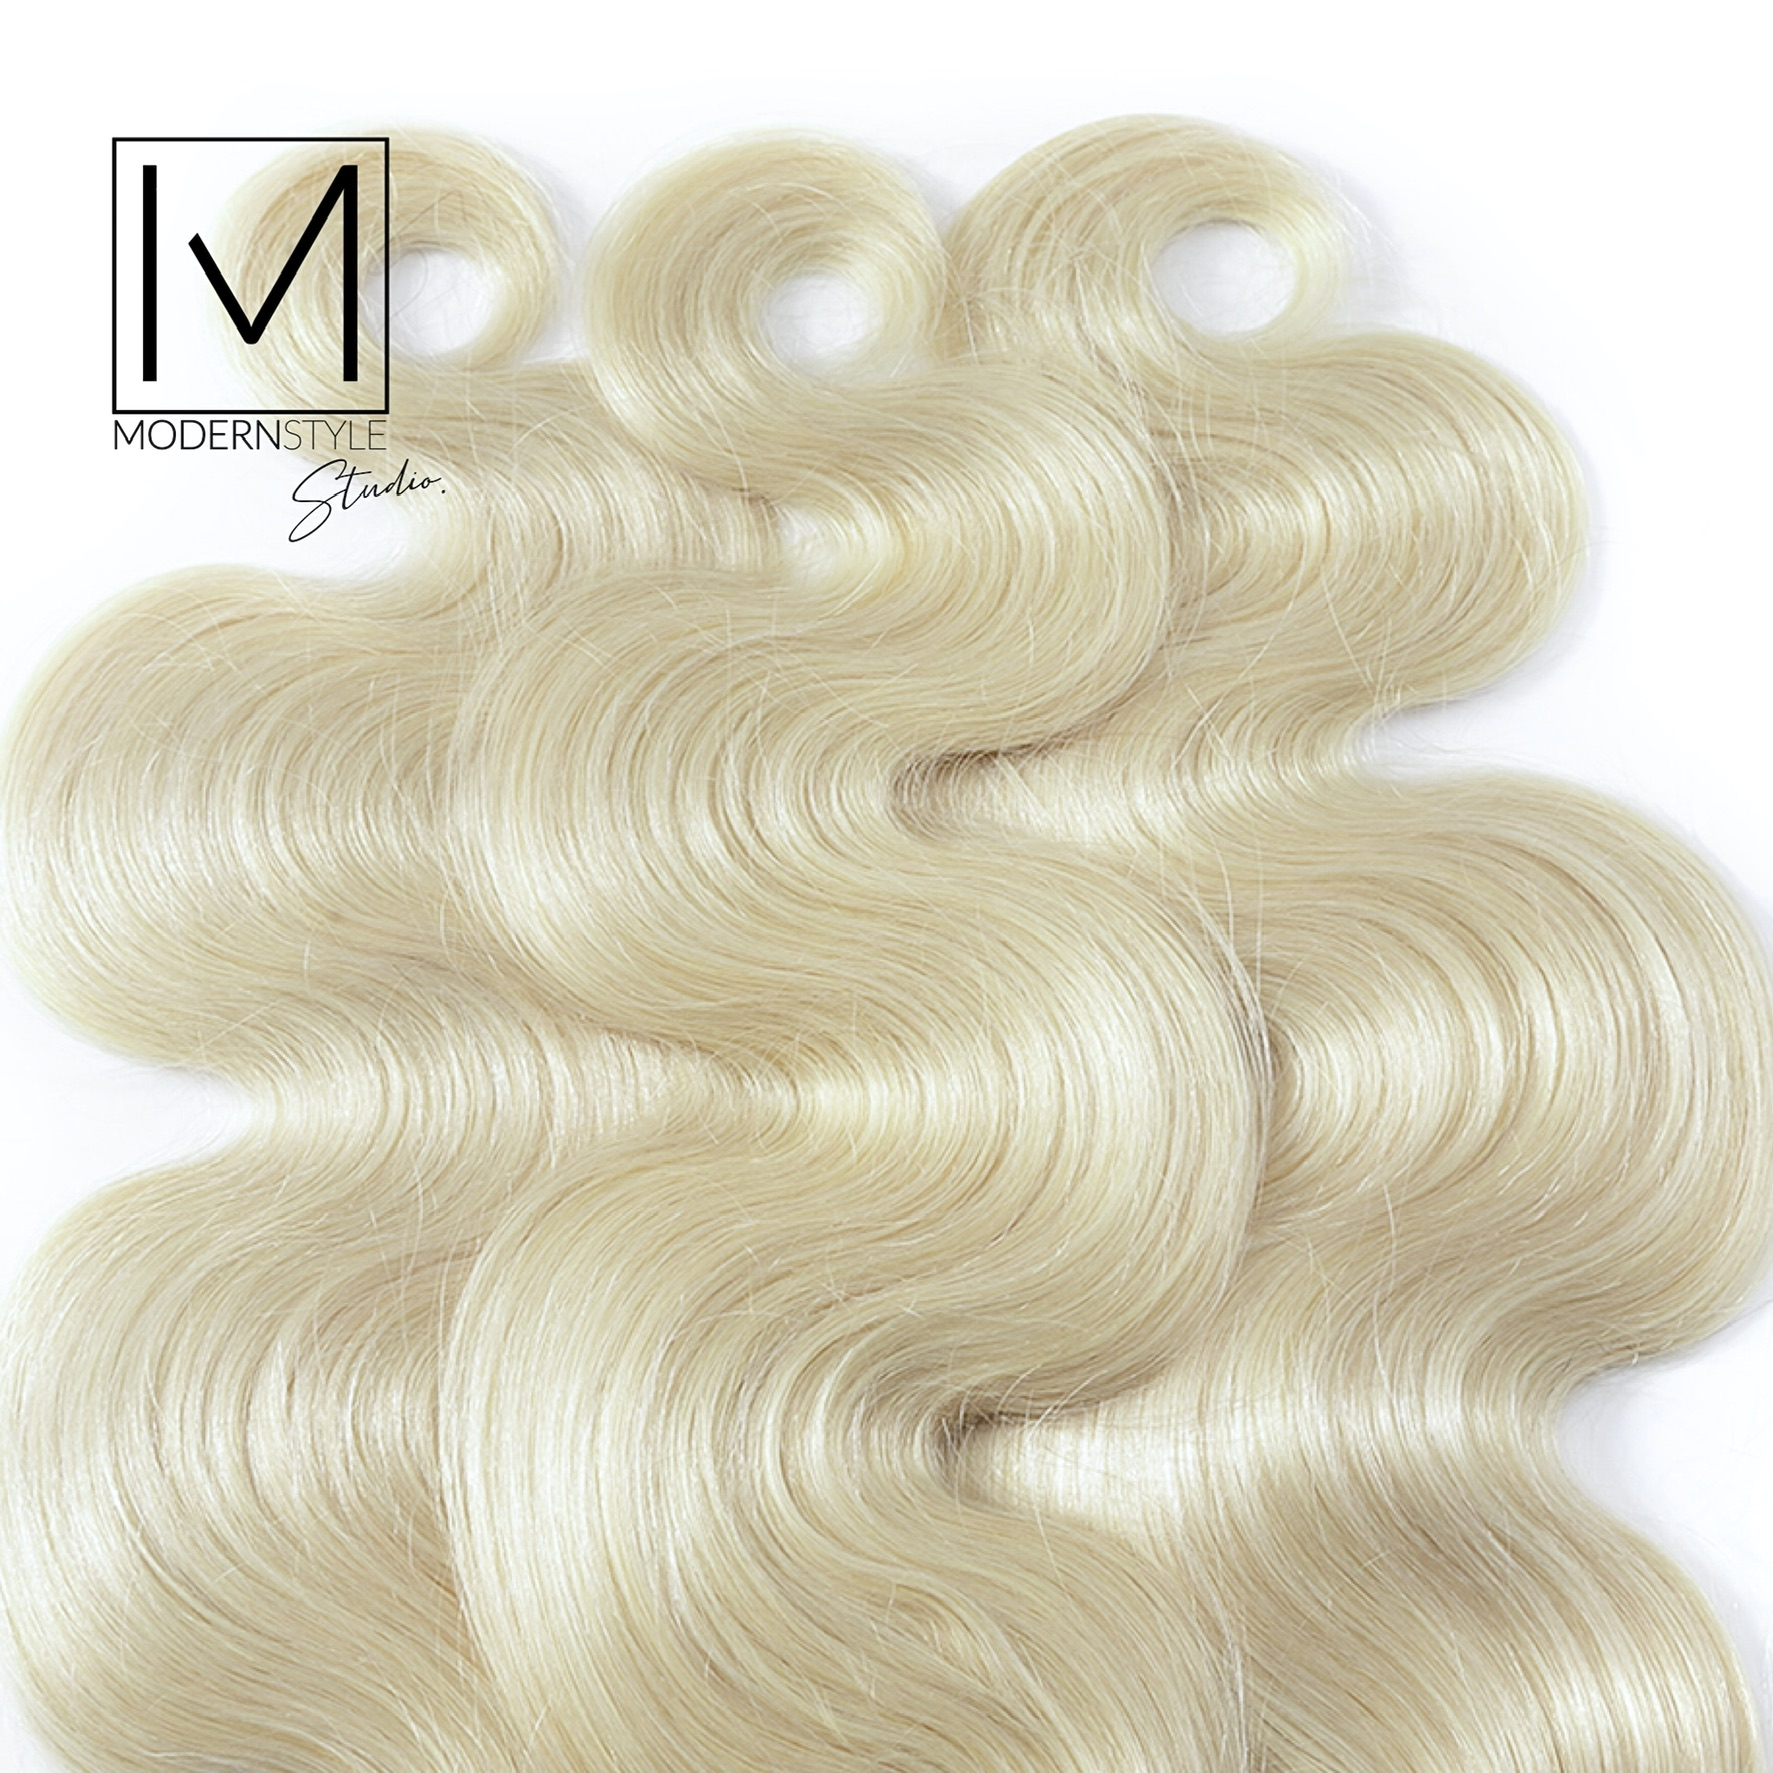 Hair extensions near me, Hand tied extensions Charlotte, hair extensions Charlotte, hand-tied hair extensions near me, hand-tied hair extensions Charlotte NC, Best hair extensions in Charlotte NC, South Charlotte hair extensions, Charlotte hair extensions expert, Best salon in Charlotte, top salons Charlotte, best hair stylist in Charlotte, Eurasian hair extensions,